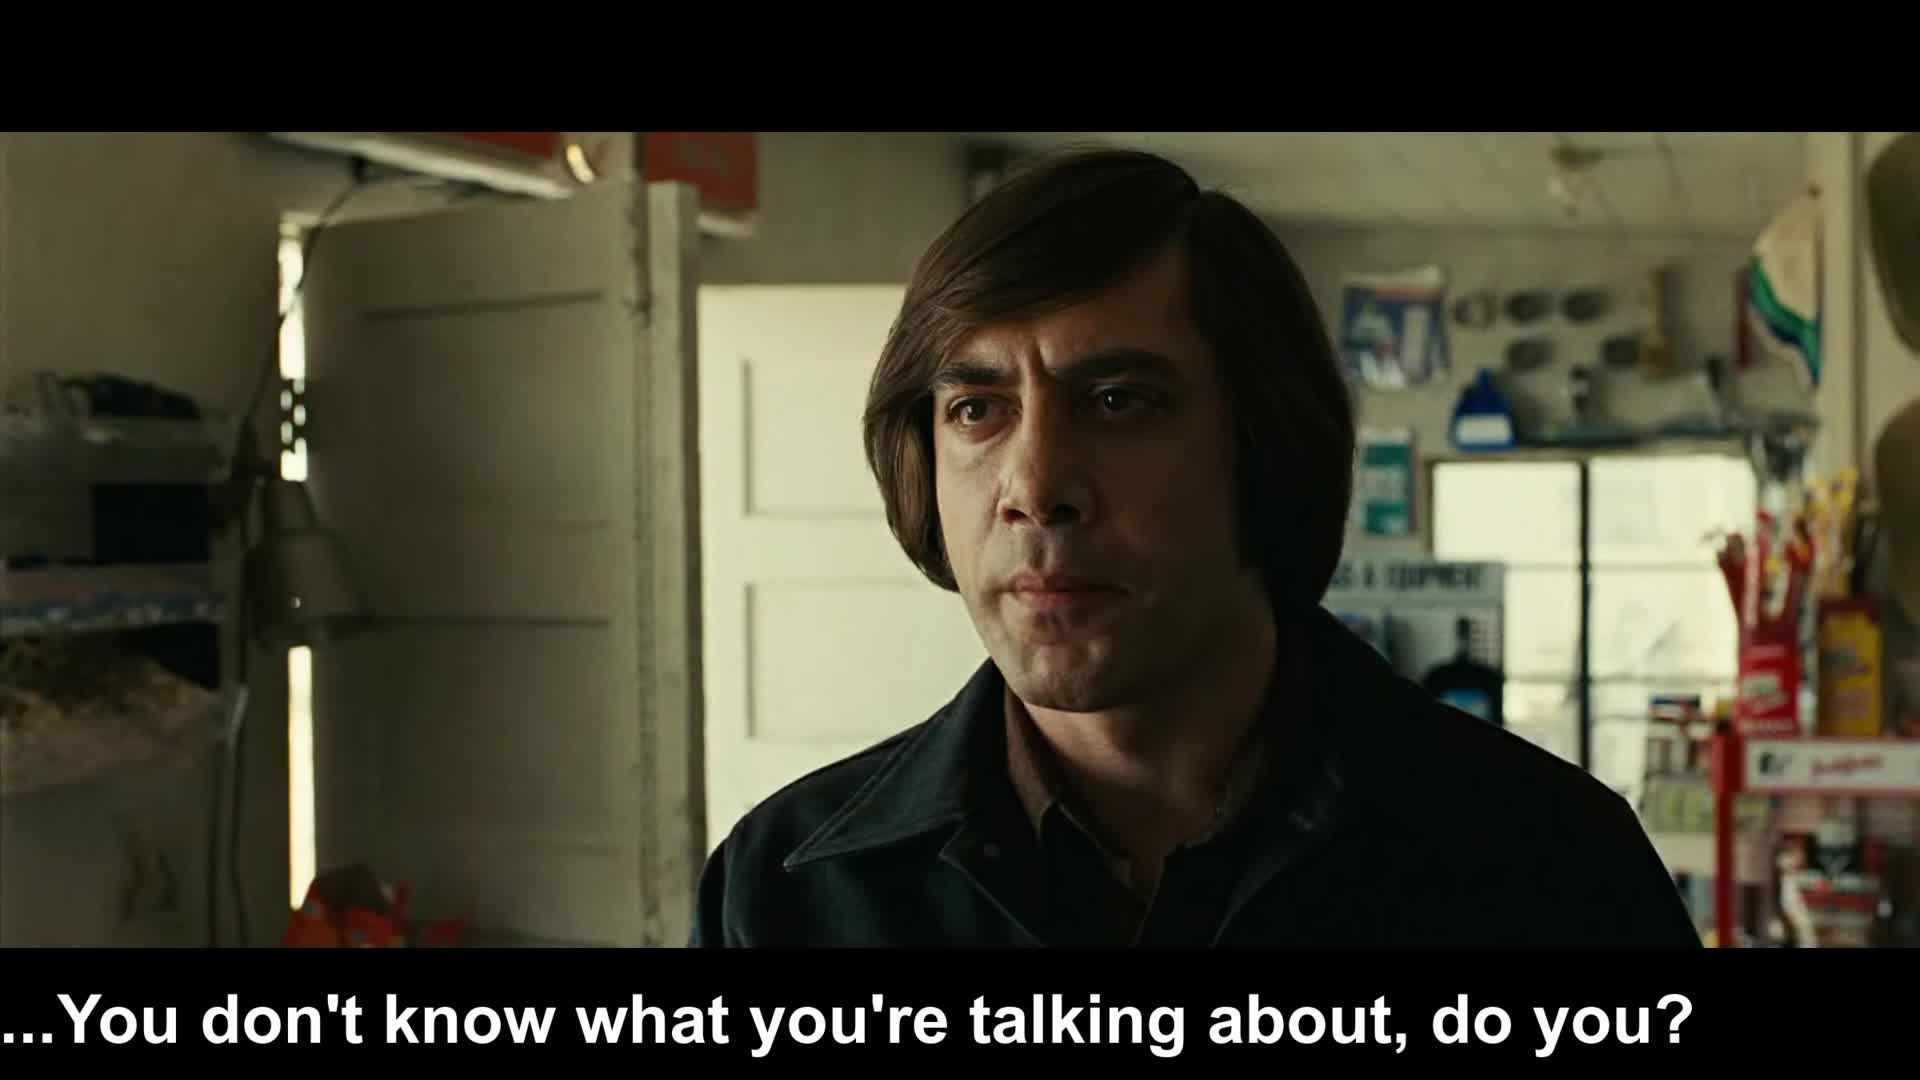 celebs, coin, country, for, guns, i don't know, idk, javier bardem, killer, men, no, no country for old men, old, toss, You don't know what you're talking about GIFs